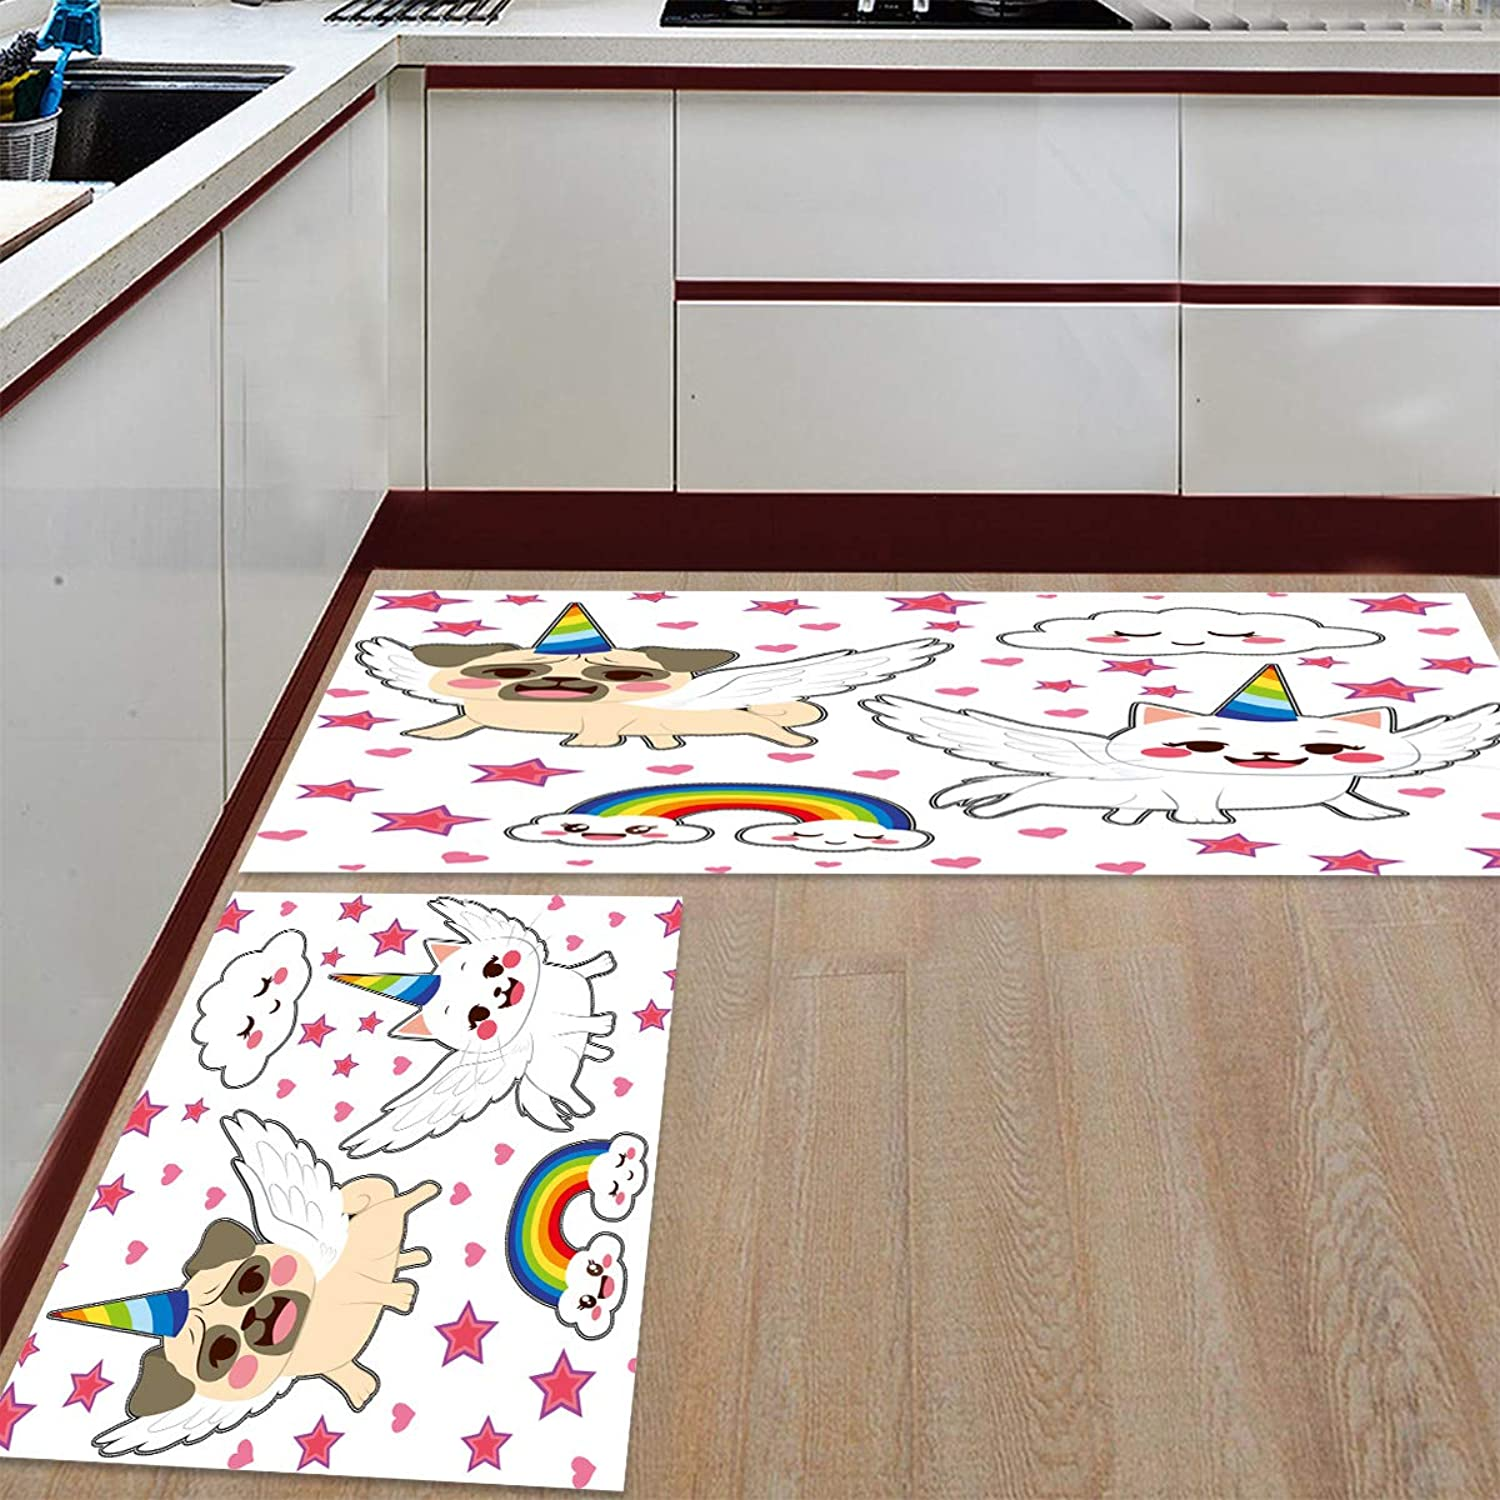 Kitchen Rugs Sets 2 Piece Floor Mats Cute Unicorn Dog Cat and Rainbow Clouds Doormat Non-Slip Rubber Backing Area Rugs Washable Carpet Inside Door Mat Pad Sets (23.6  x 35.4 +23.6  x 70.9 )